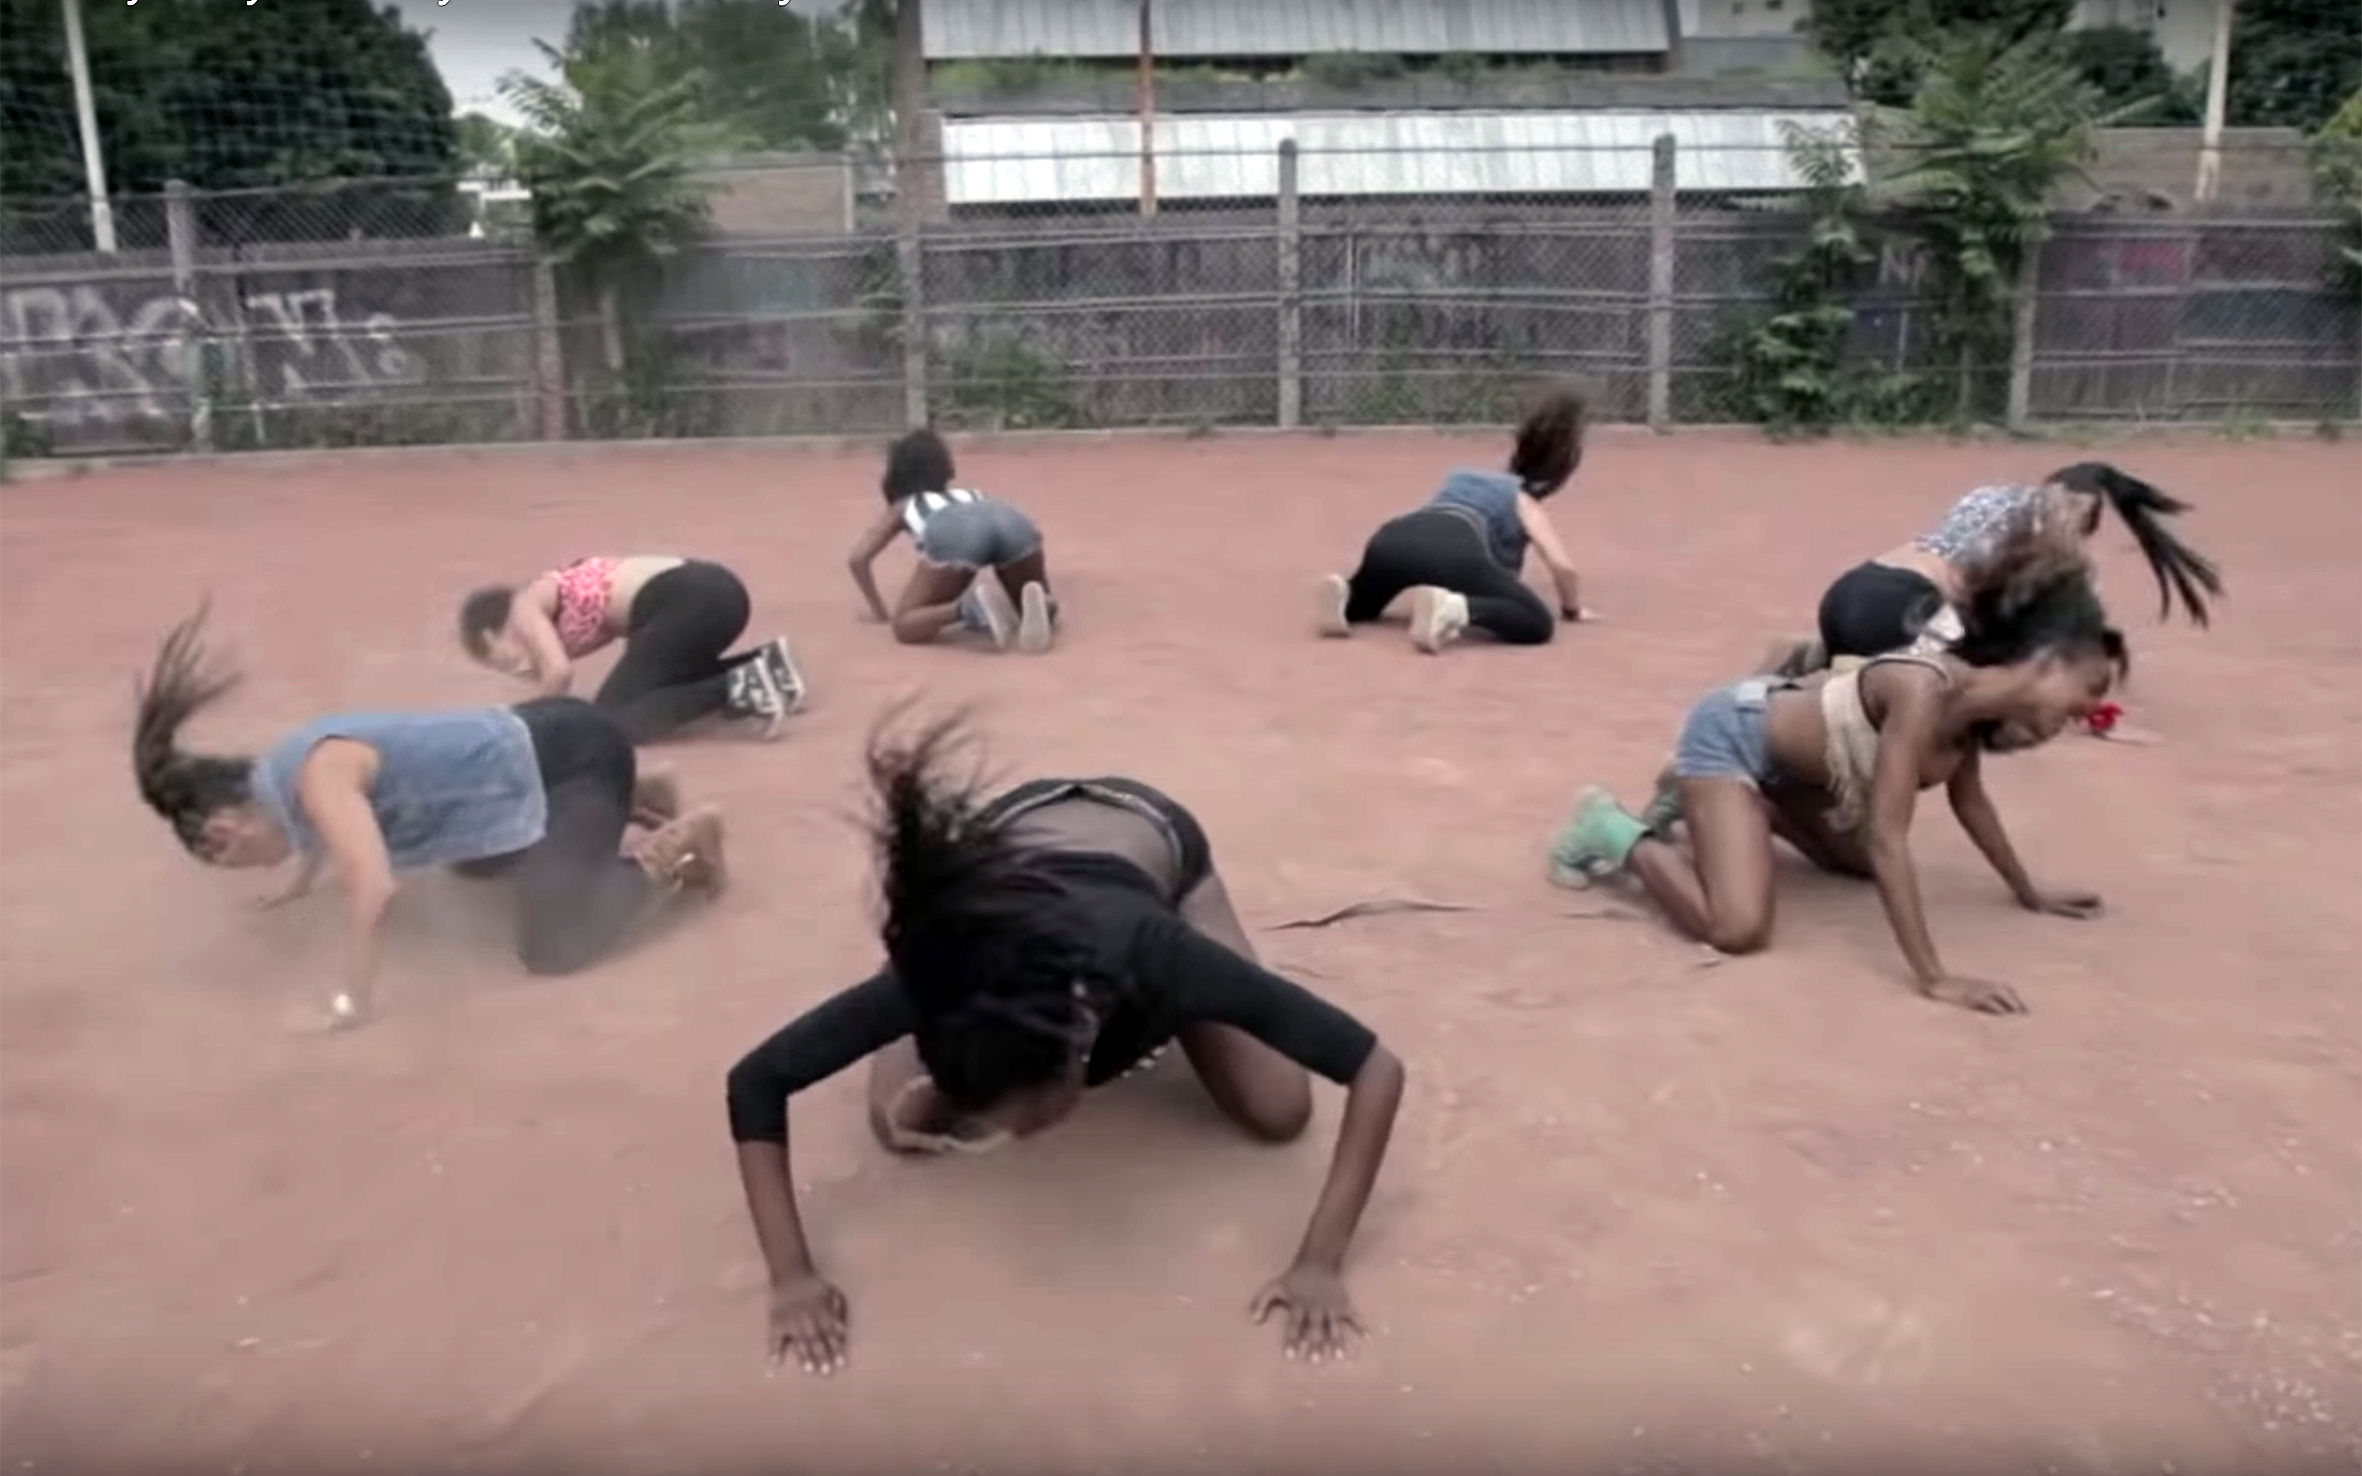 257.Dutty Wine / Jamaica / Guyana / Africa - Dutty Wine is an African-Jamaican dance, typically performed by young women. The dance originated in Jamaica as with many other dances like